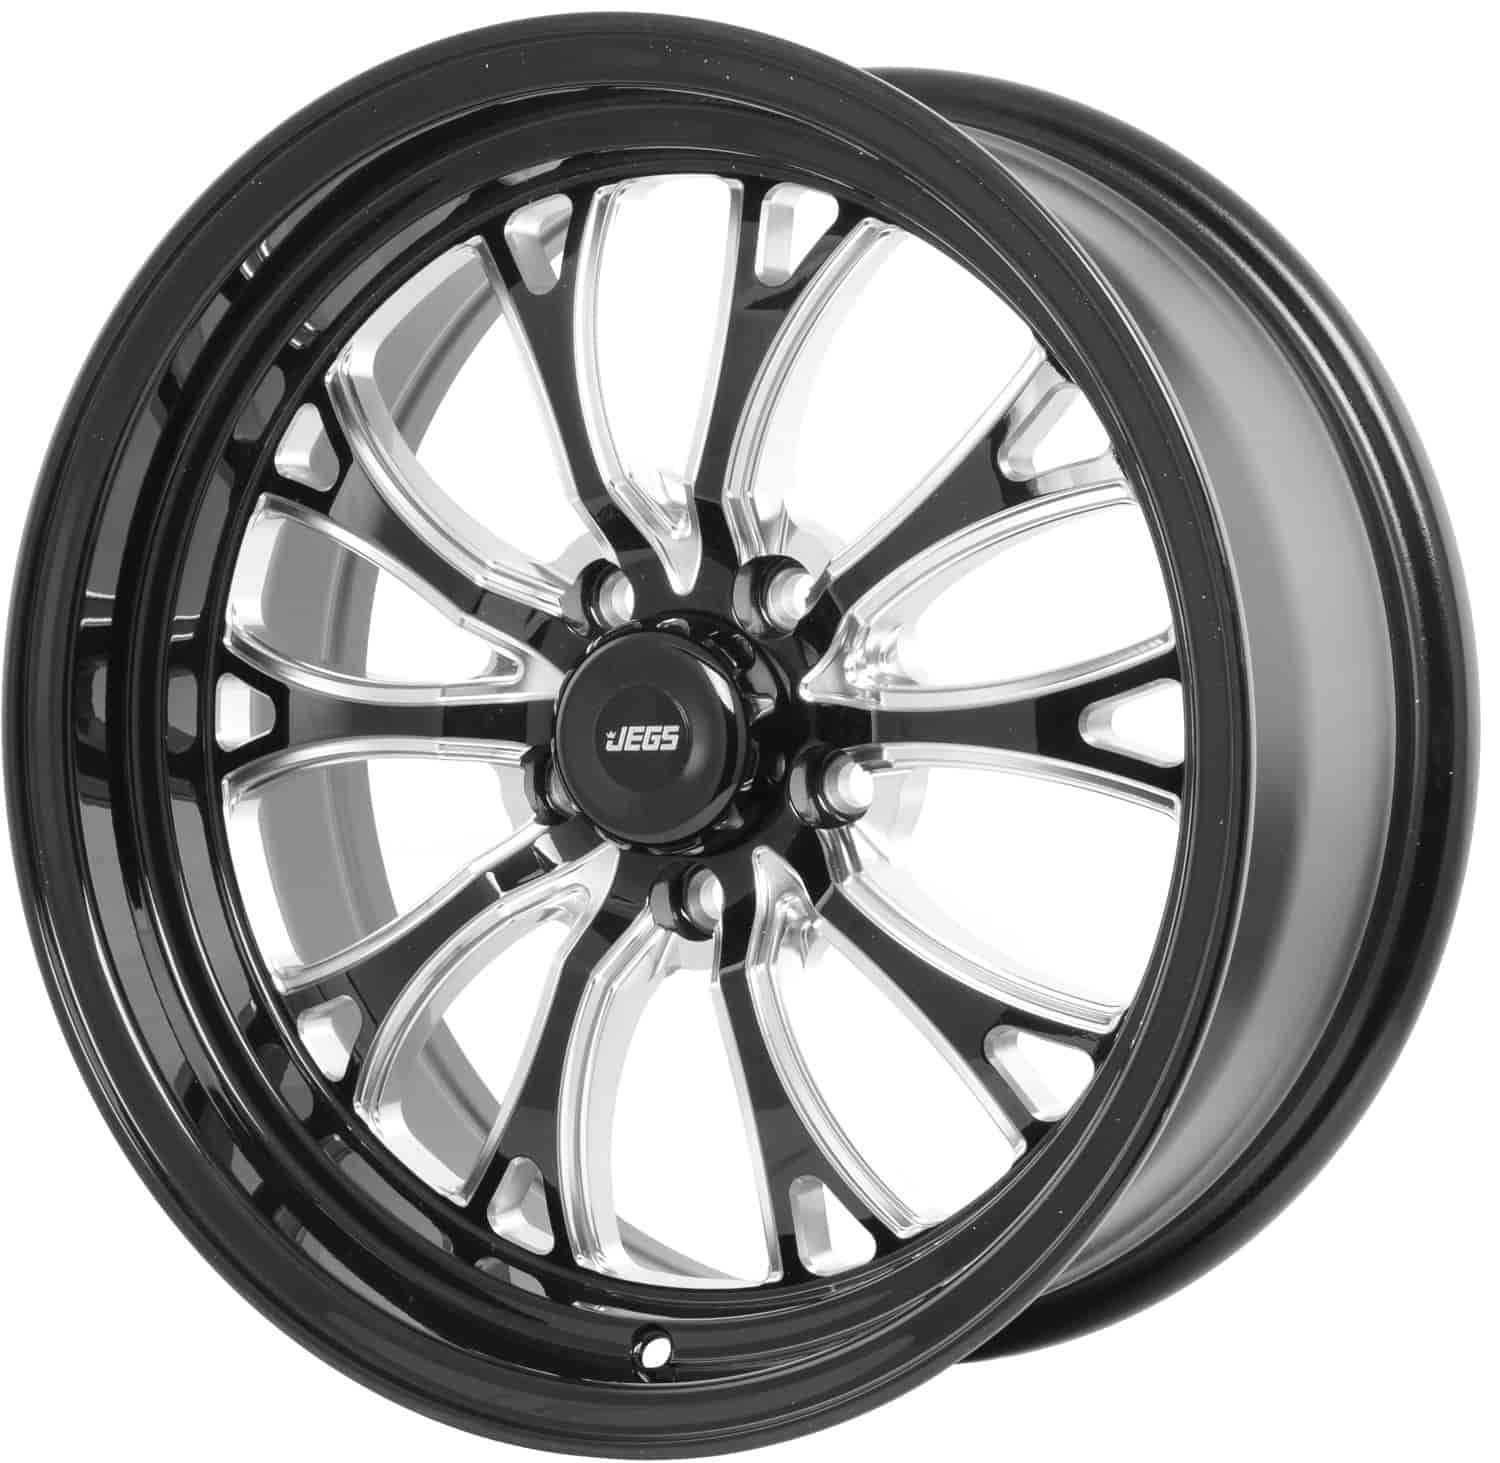 JEGS Performance Products 681444